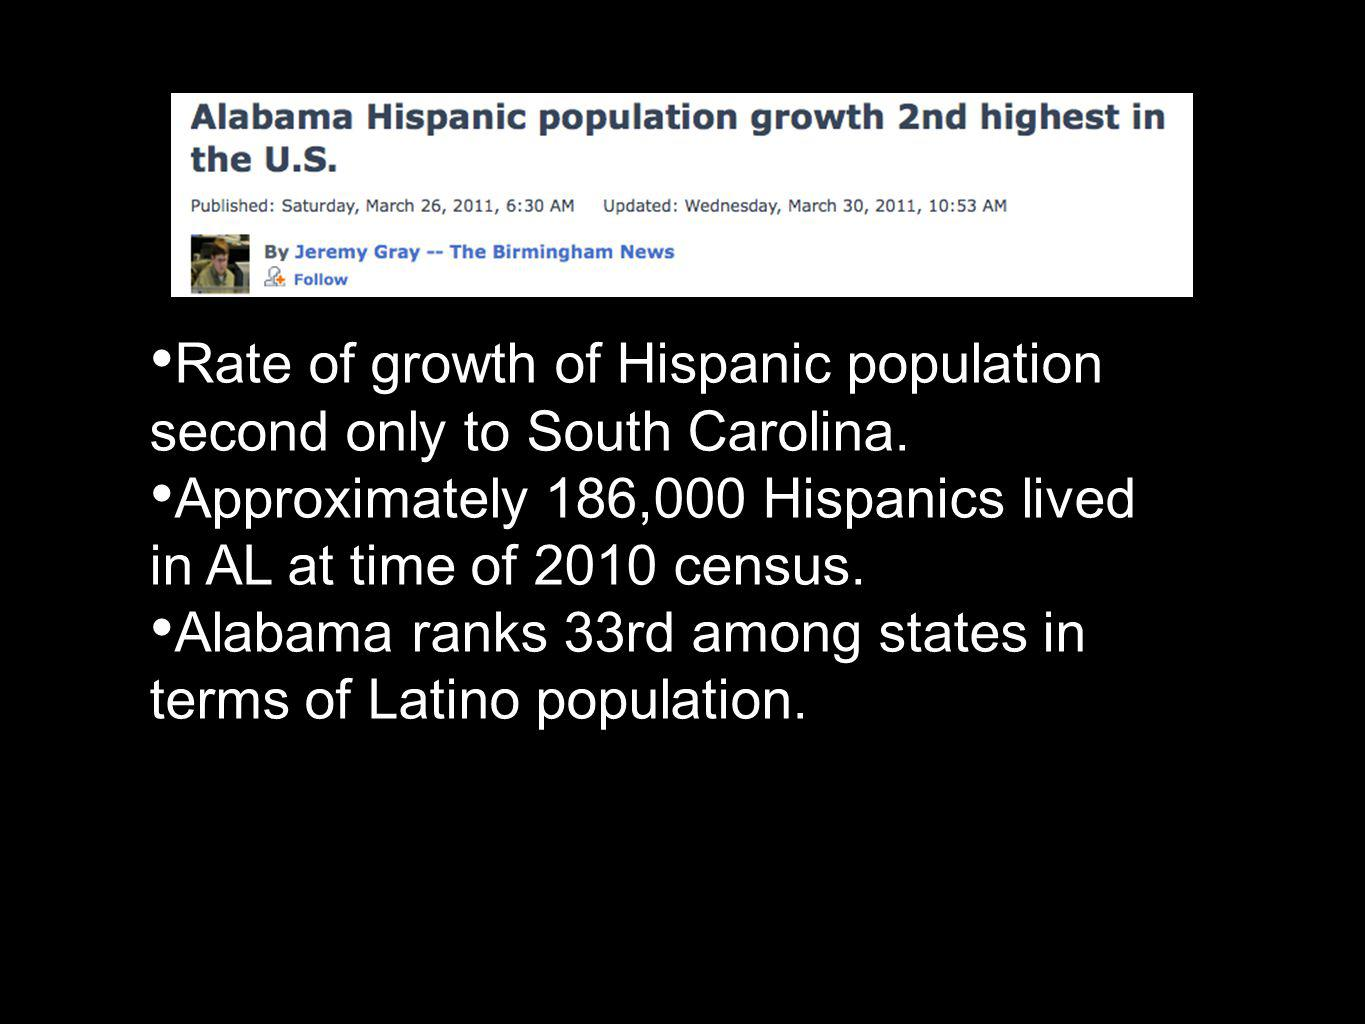 Rate of growth of Hispanic population second only to South Carolina.